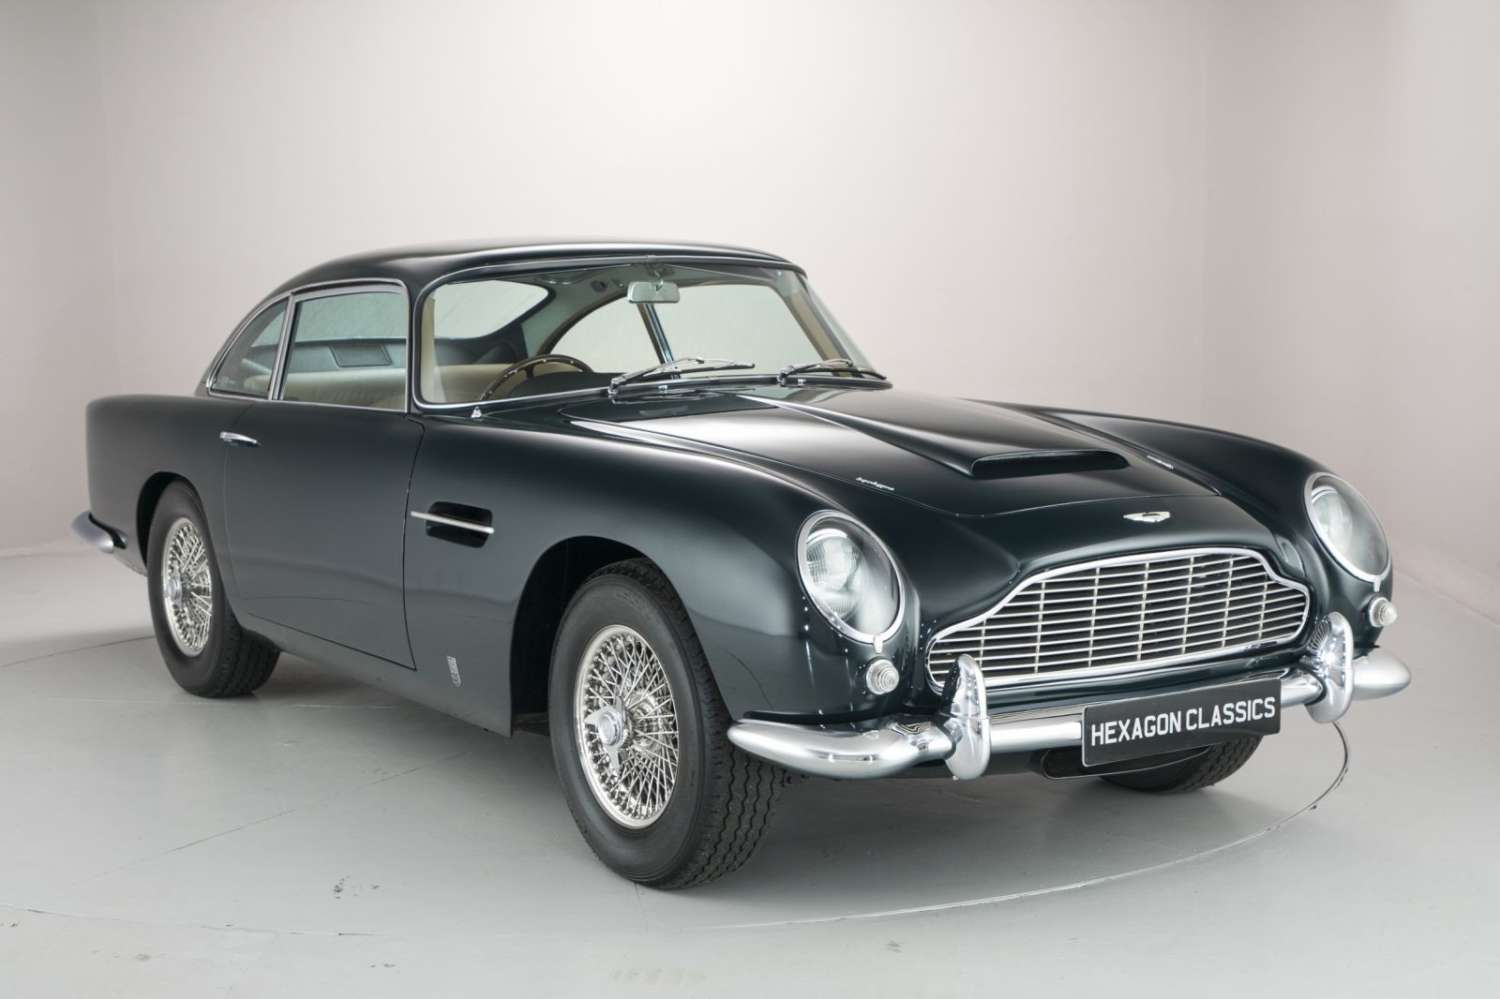 iconic aston martin db5 once owned by prince aga khan is up for sale priced at inr crore. Black Bedroom Furniture Sets. Home Design Ideas